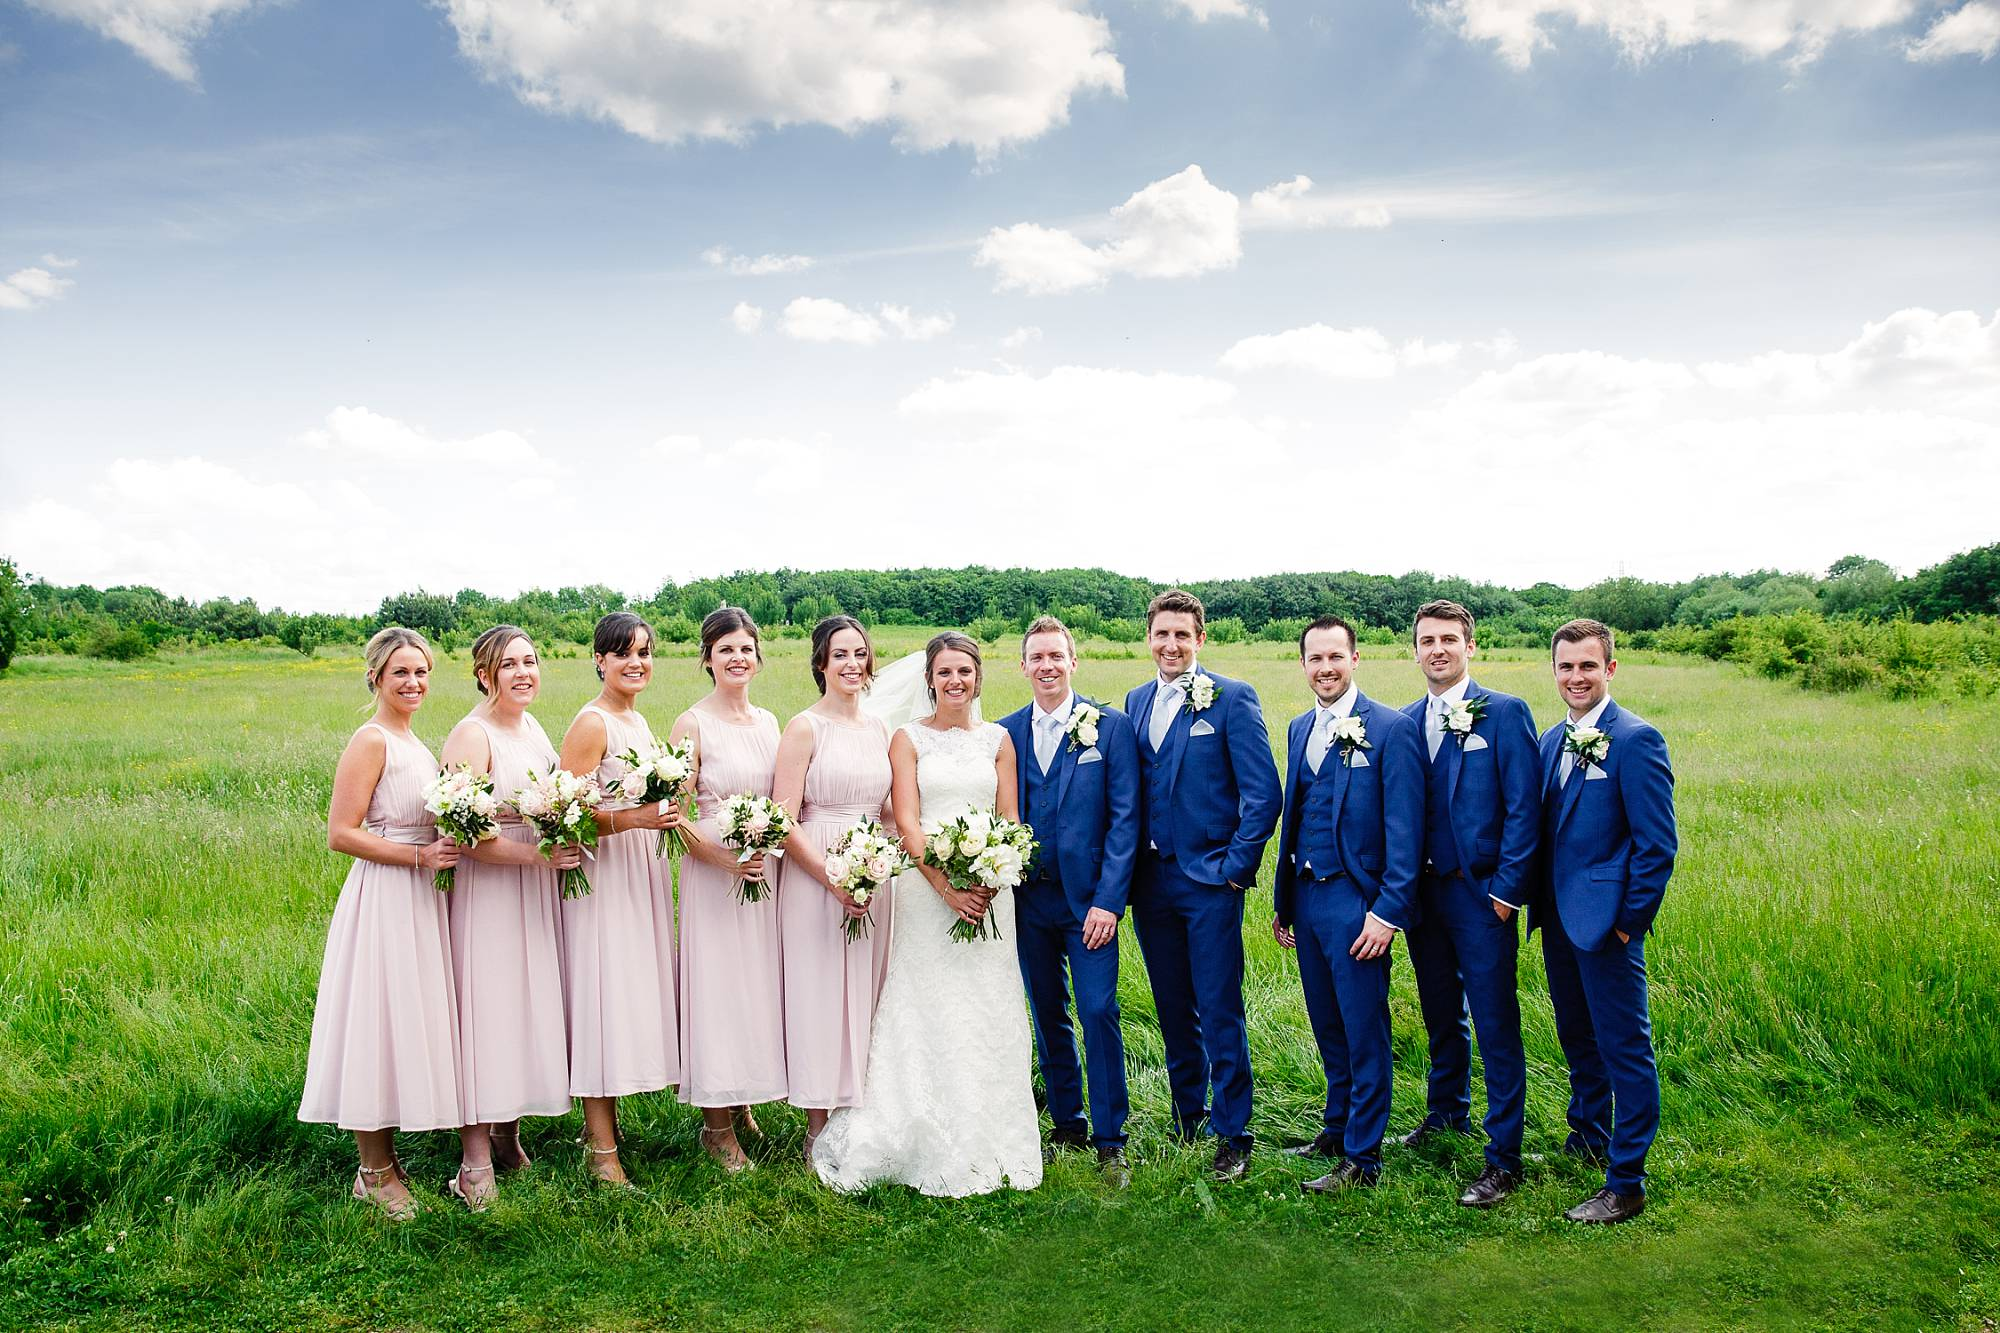 Essex Barn Thames Chase Wedding Photographer-12b.jpg